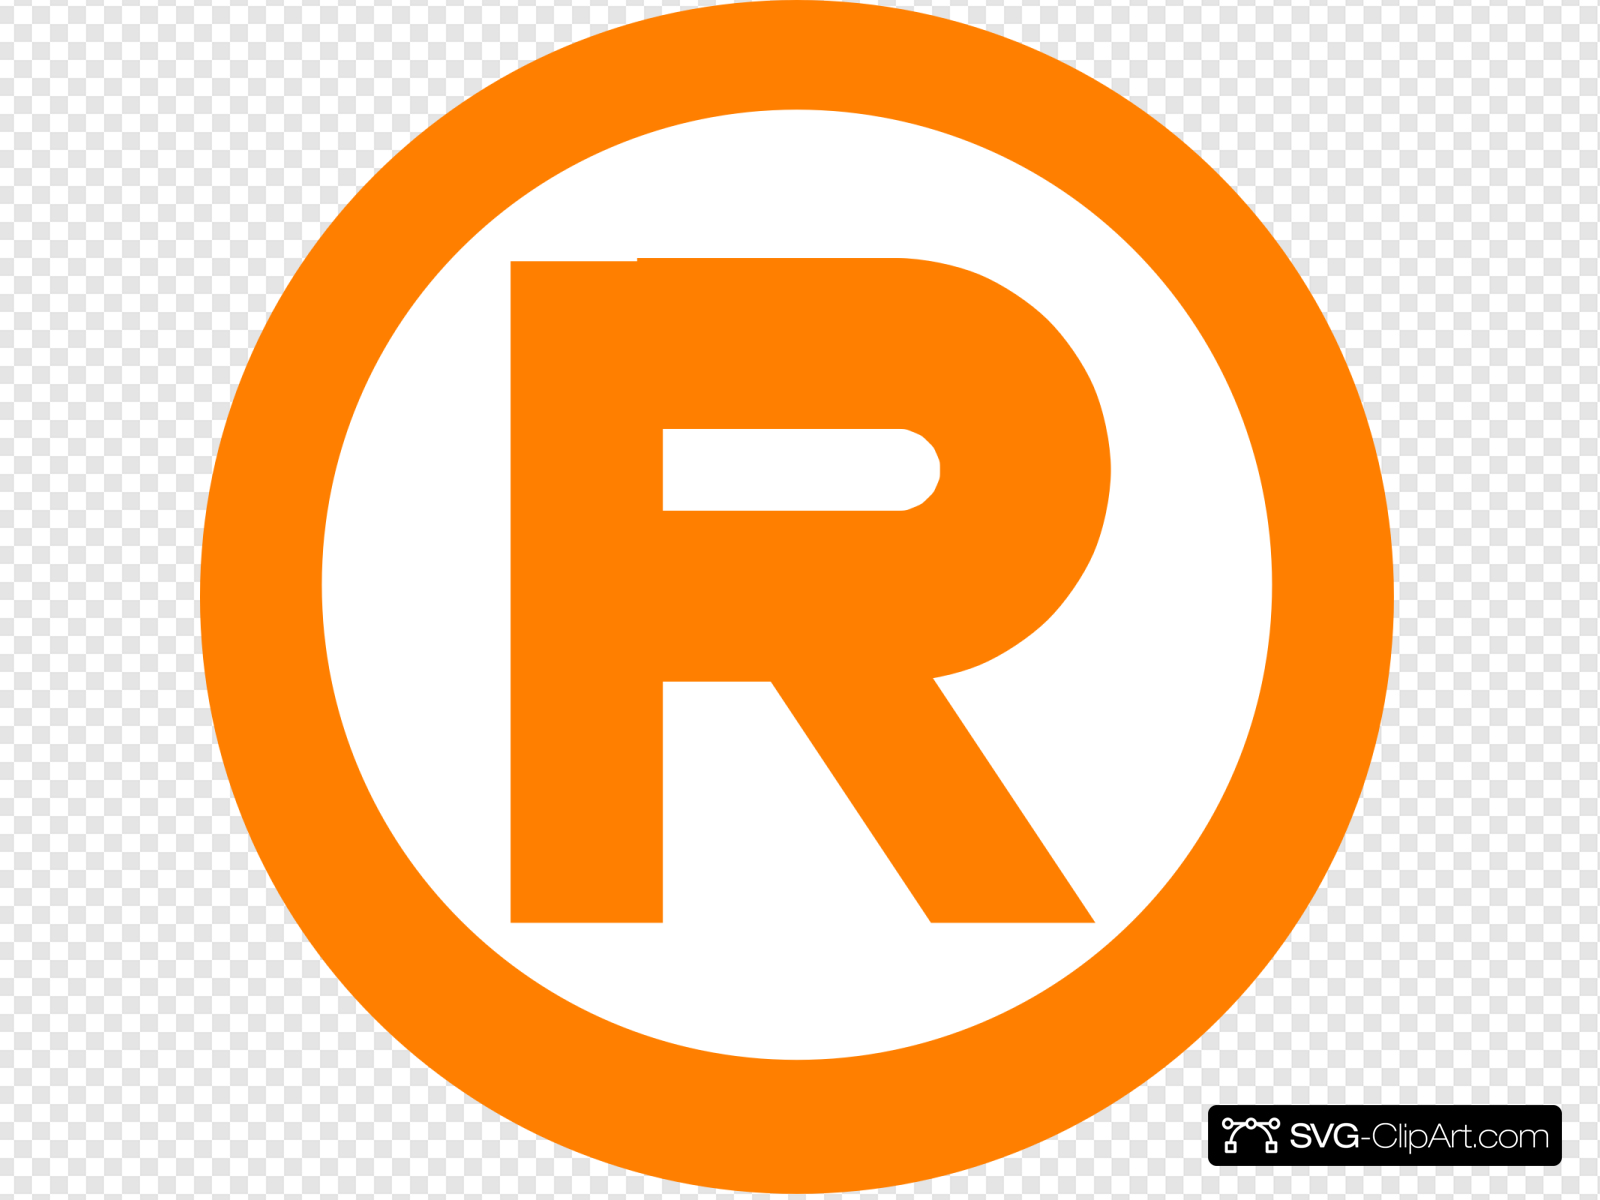 Orange Registered Mark Clip art, Icon and SVG.